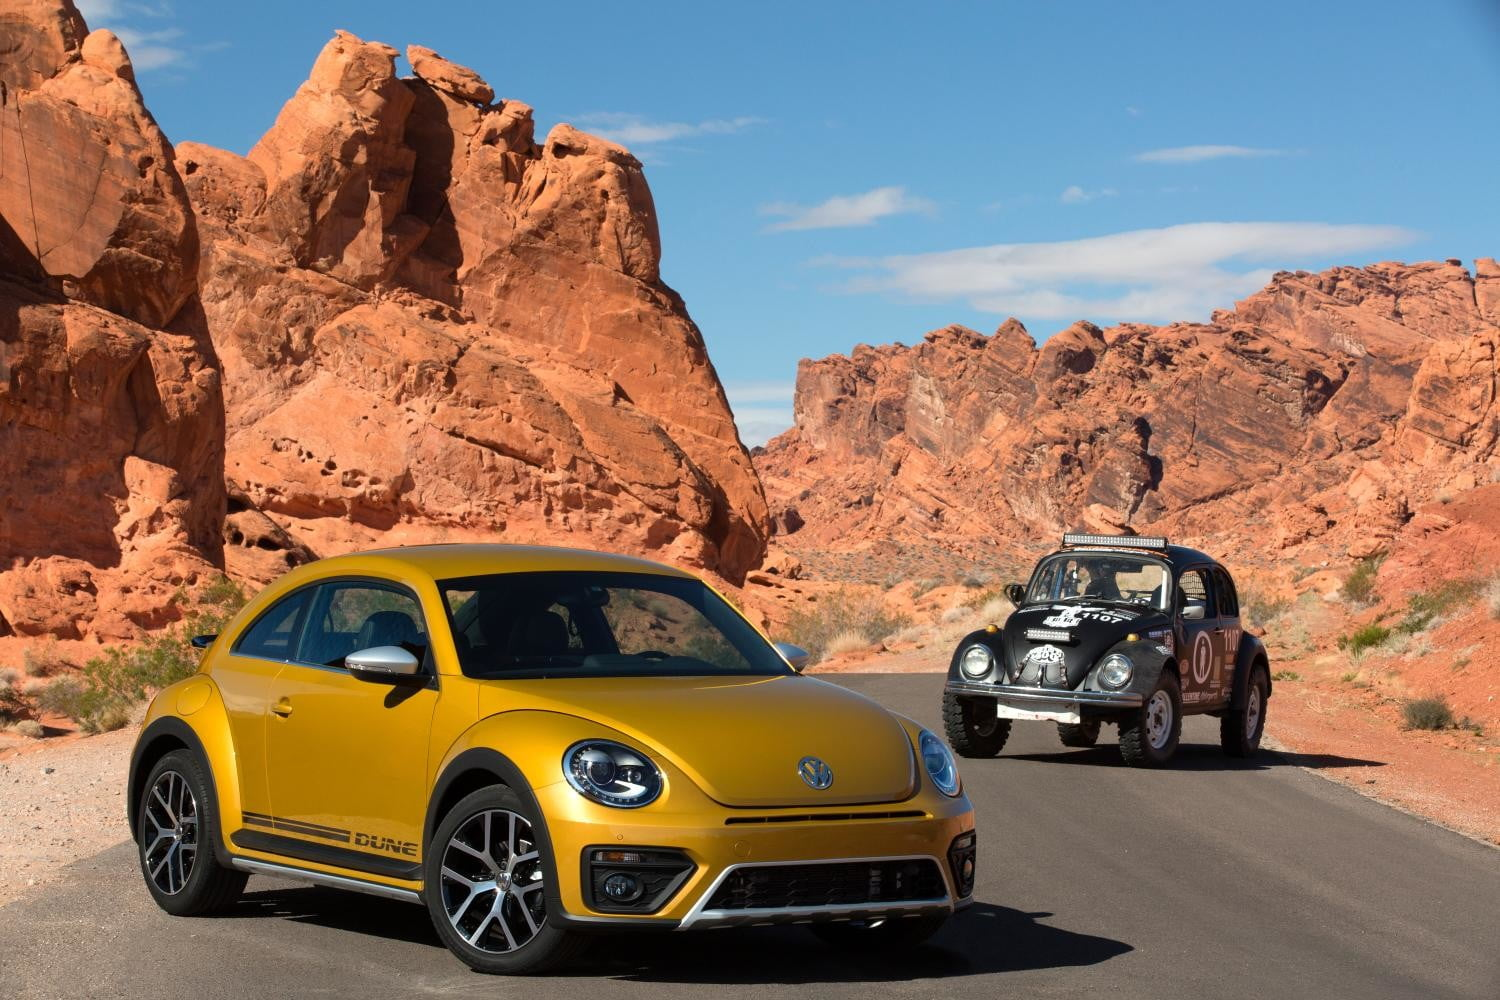 49 All New 2020 Vw Beetle Dune Overview